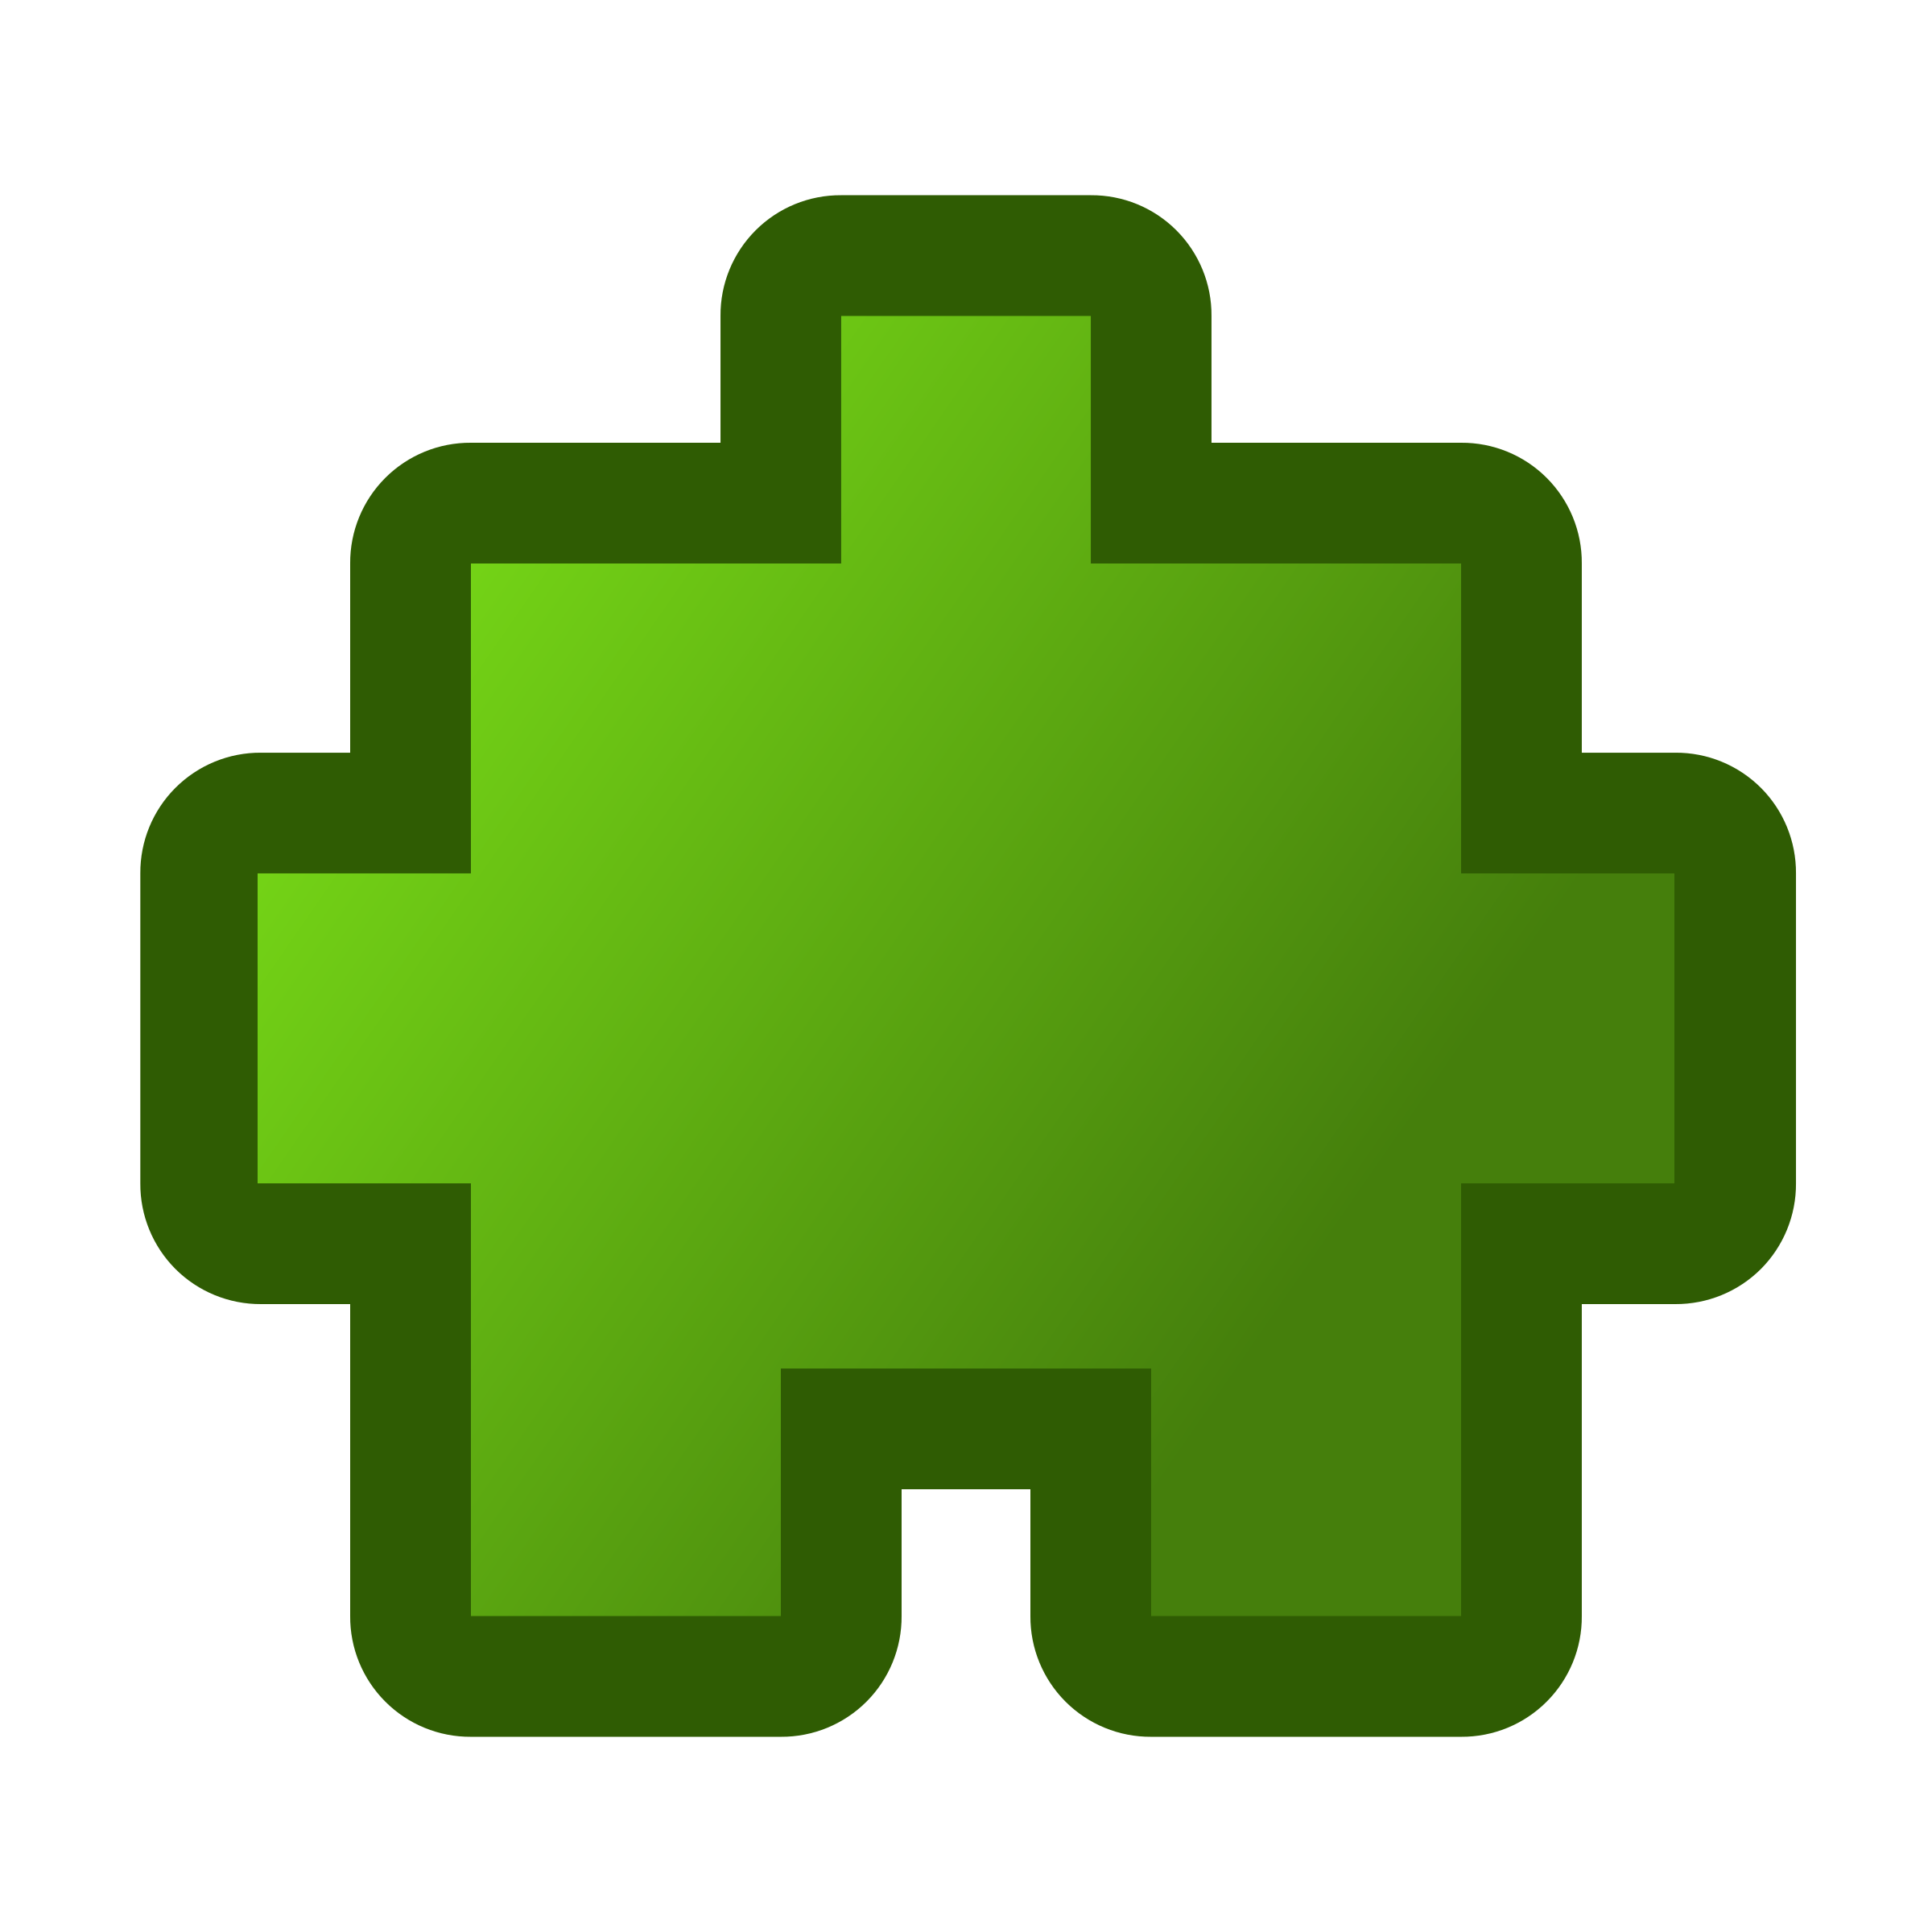 icon-puzzle2-green by jean_victor_balin